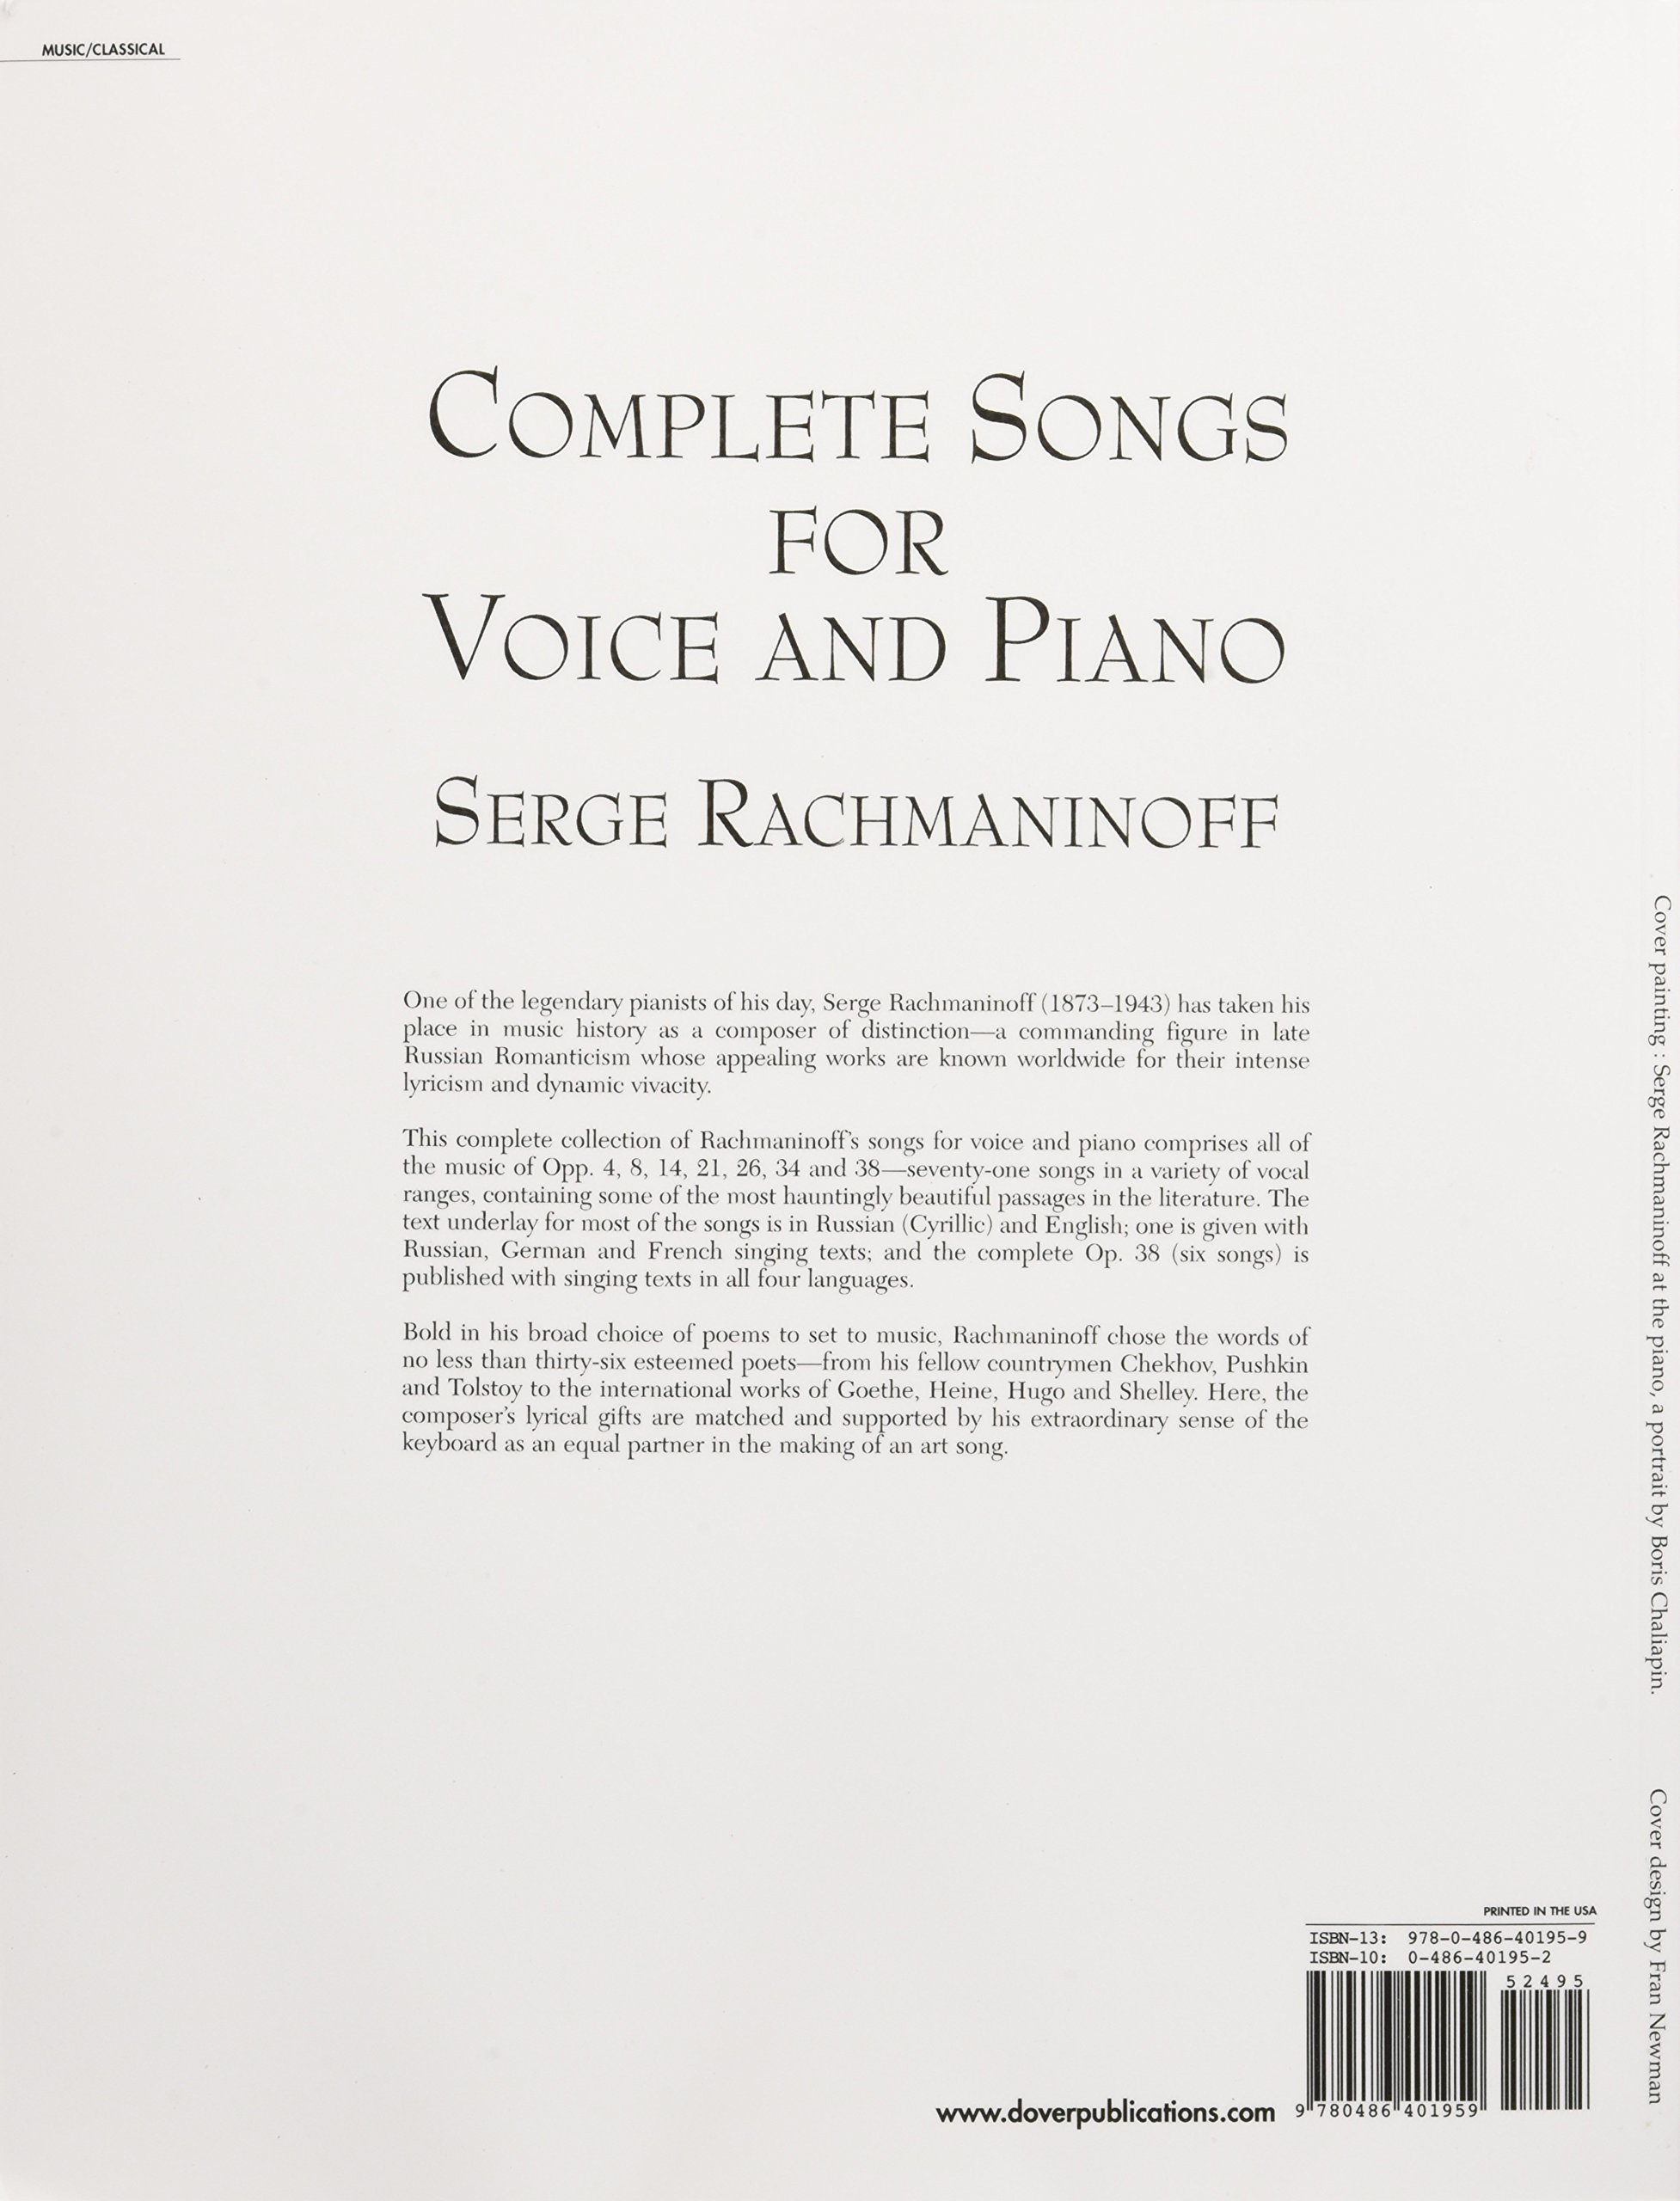 Complete Songs For Voice And Piano (dover Song Collections): Serge  Rachmaninoff: 9780486401959: Amazon: Books